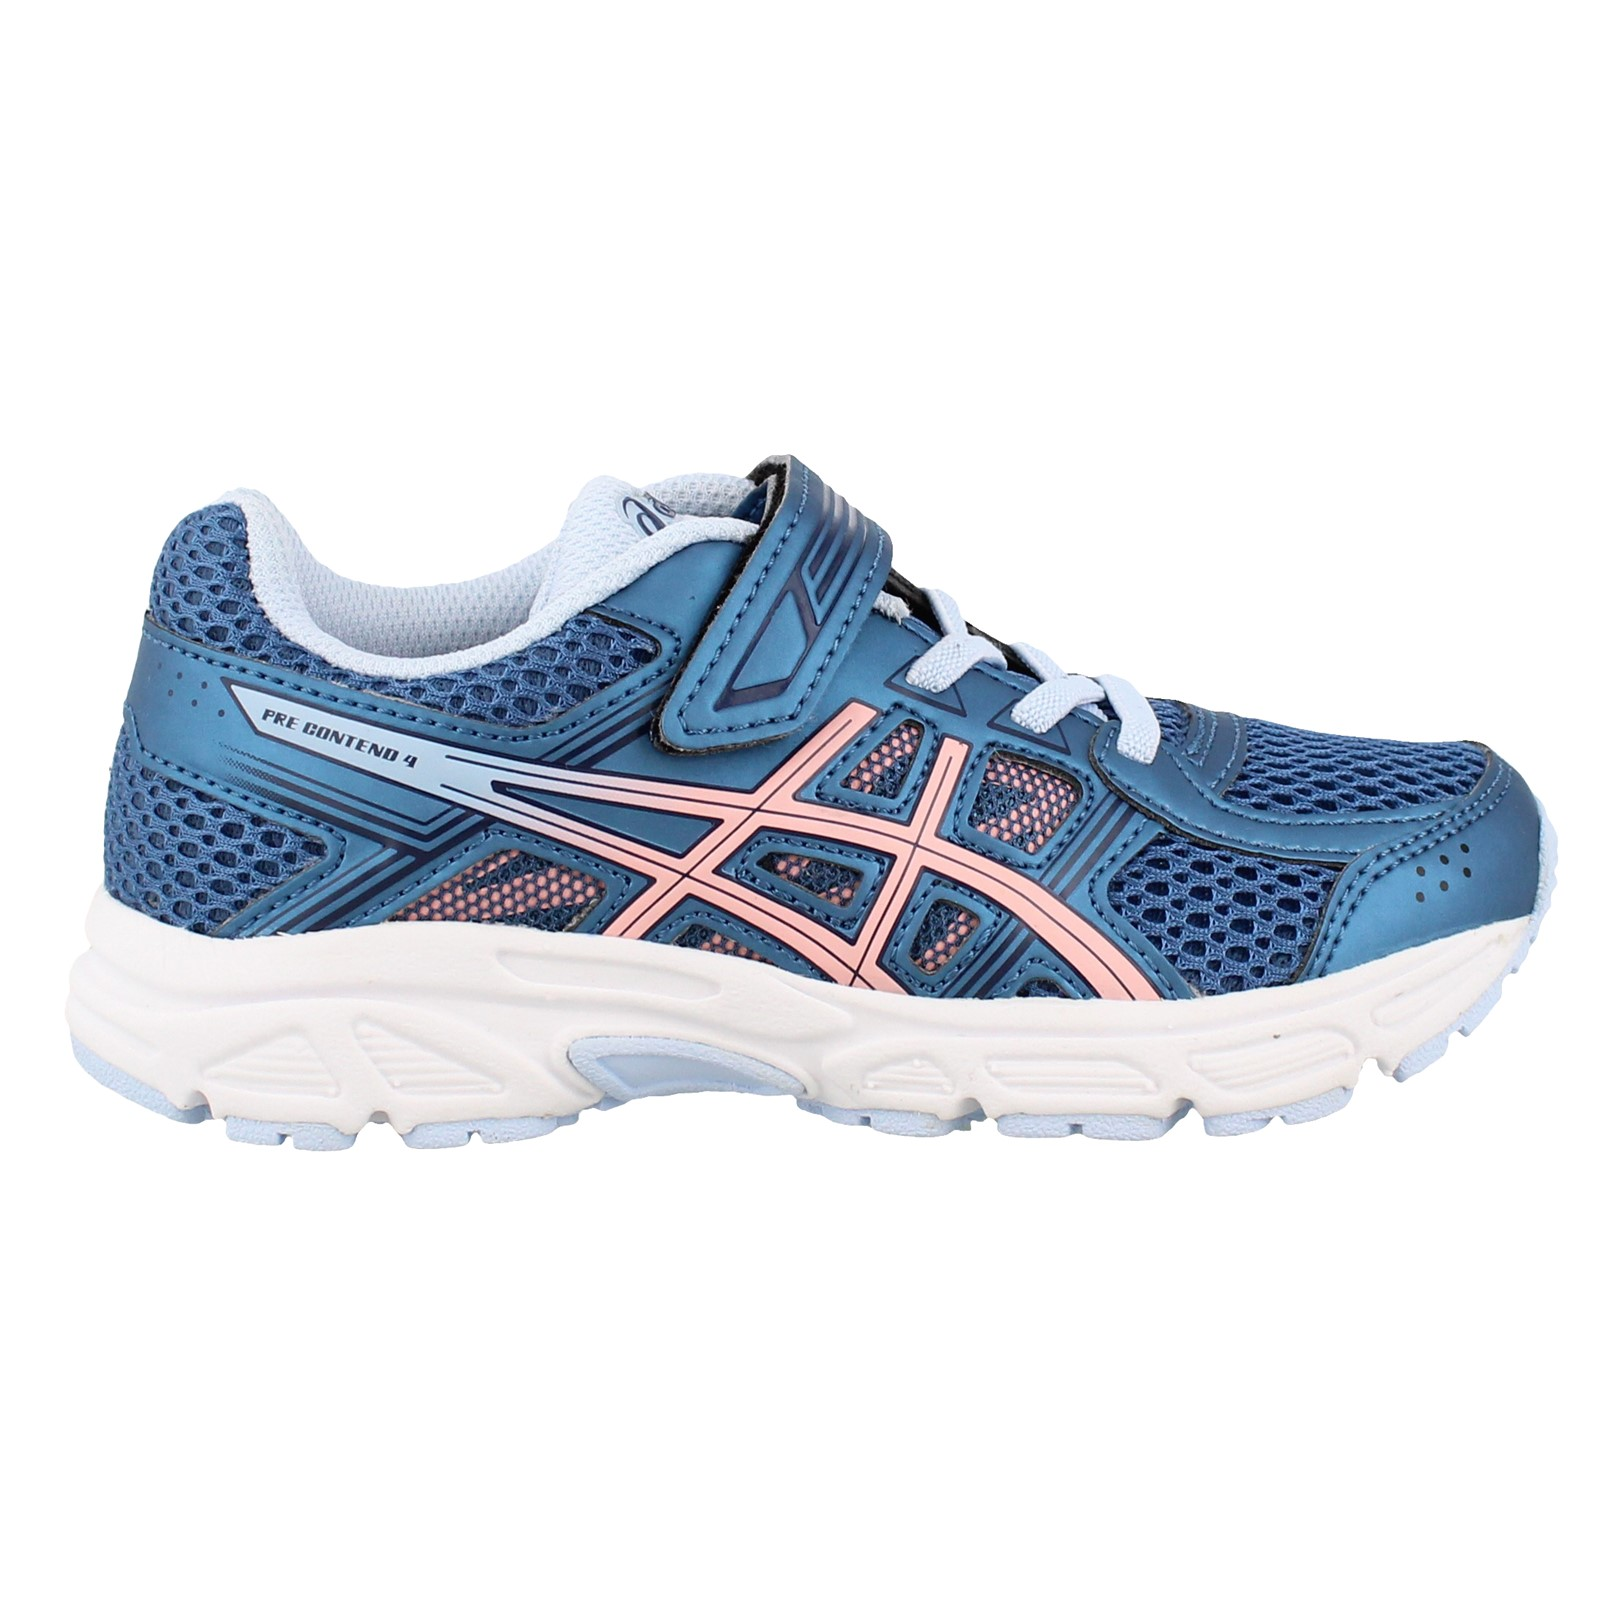 Kid's ASICS, GEL CONTEND 4 GS RUNNING SHOES